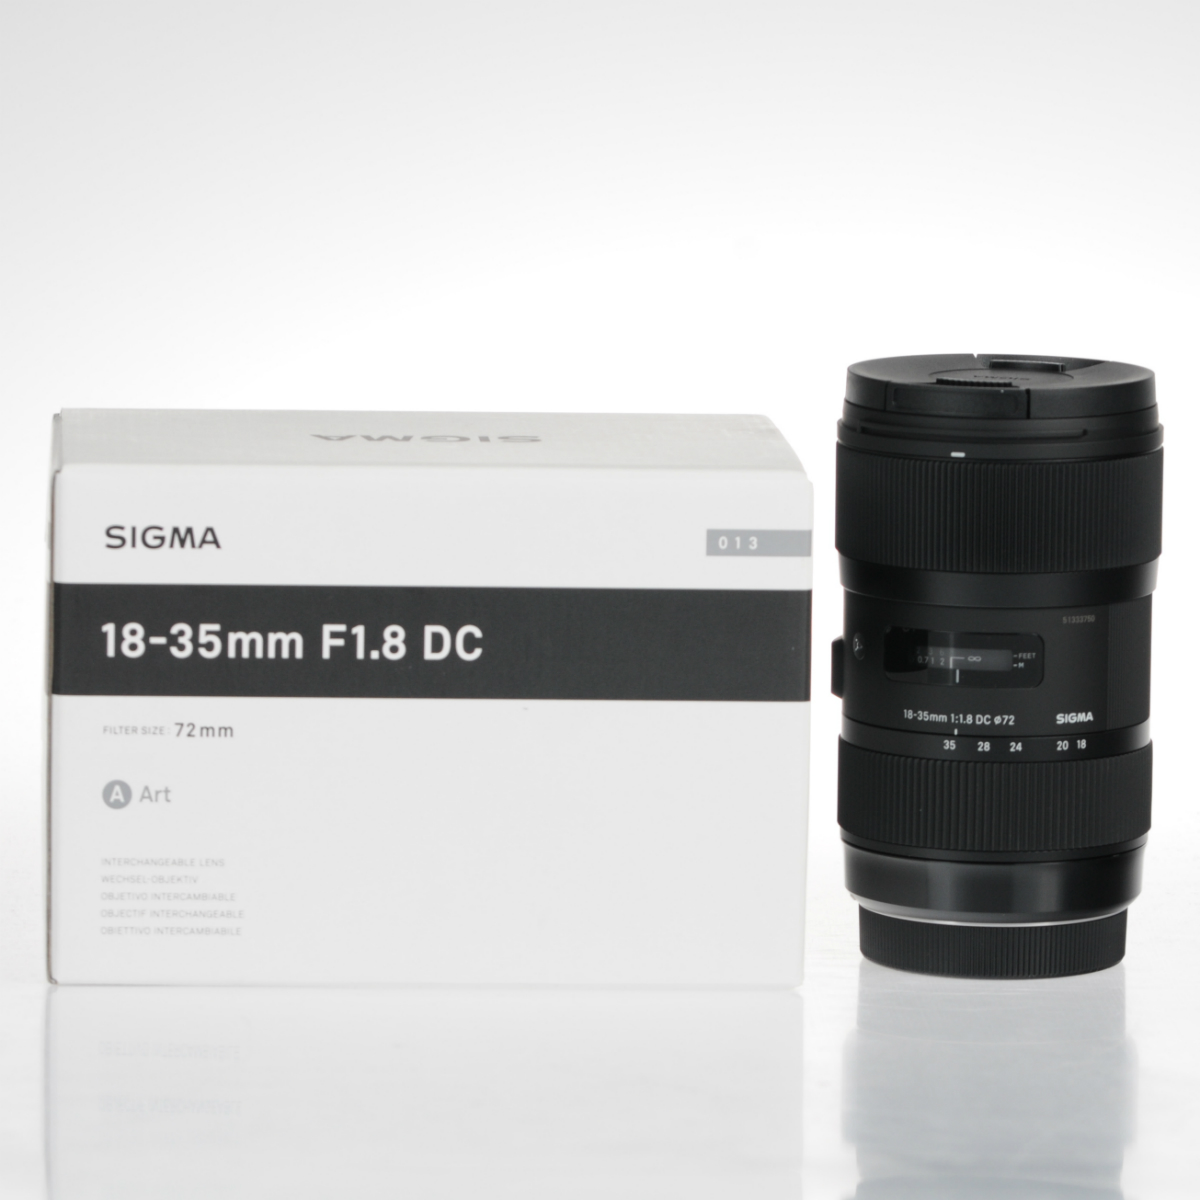 Image of Sigma Art 18-35mm f/1.8 DC HSM Lens For Canon Mount